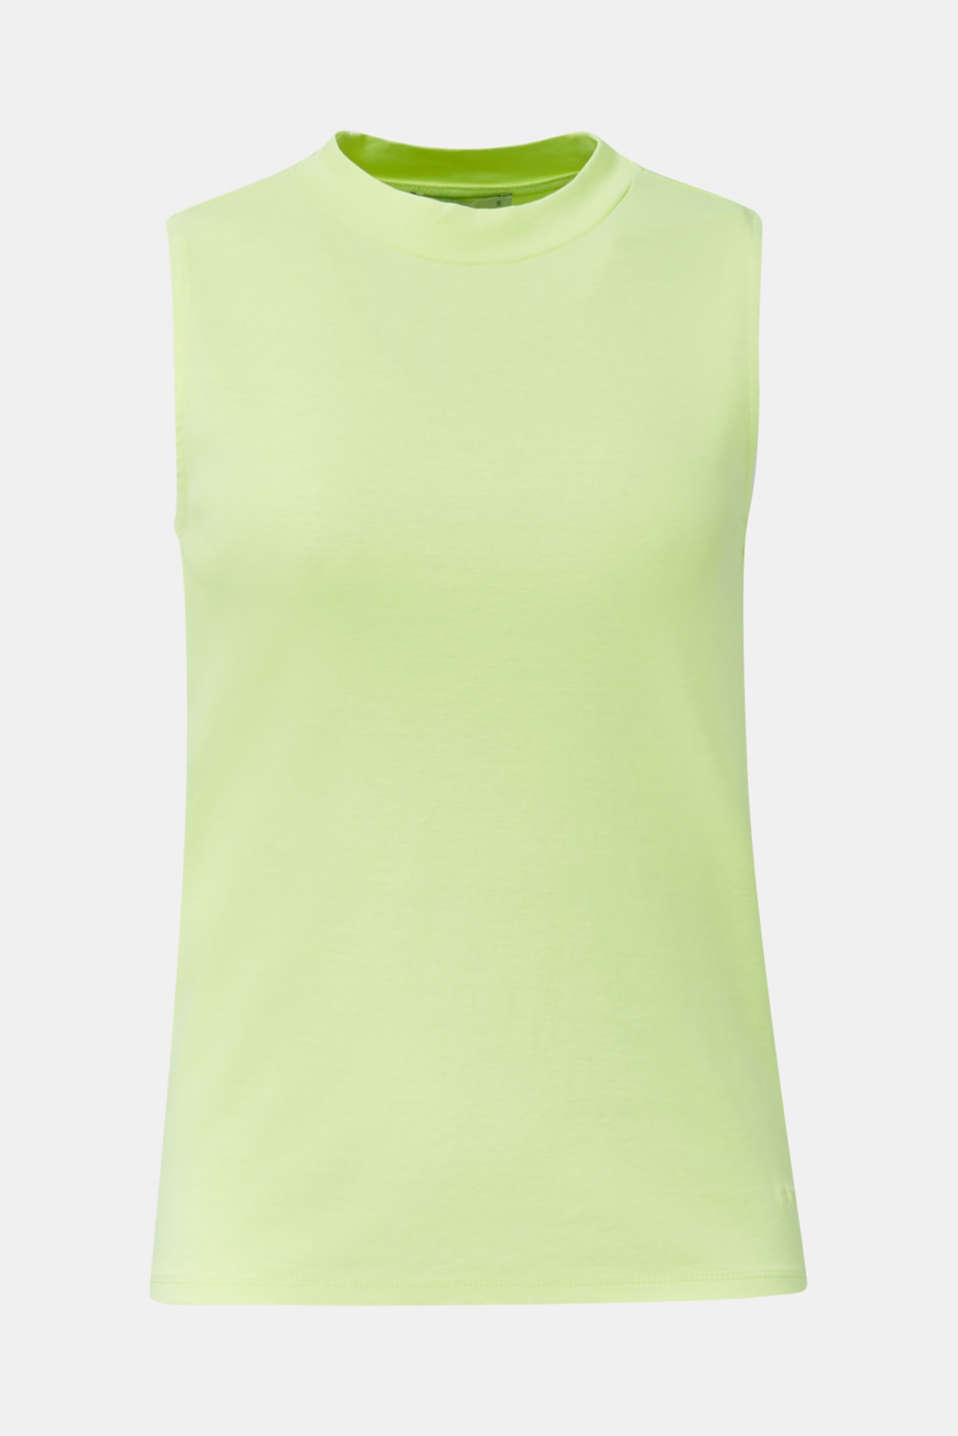 Band collar top in 100% cotton, LIME YELLOW 3, detail image number 6